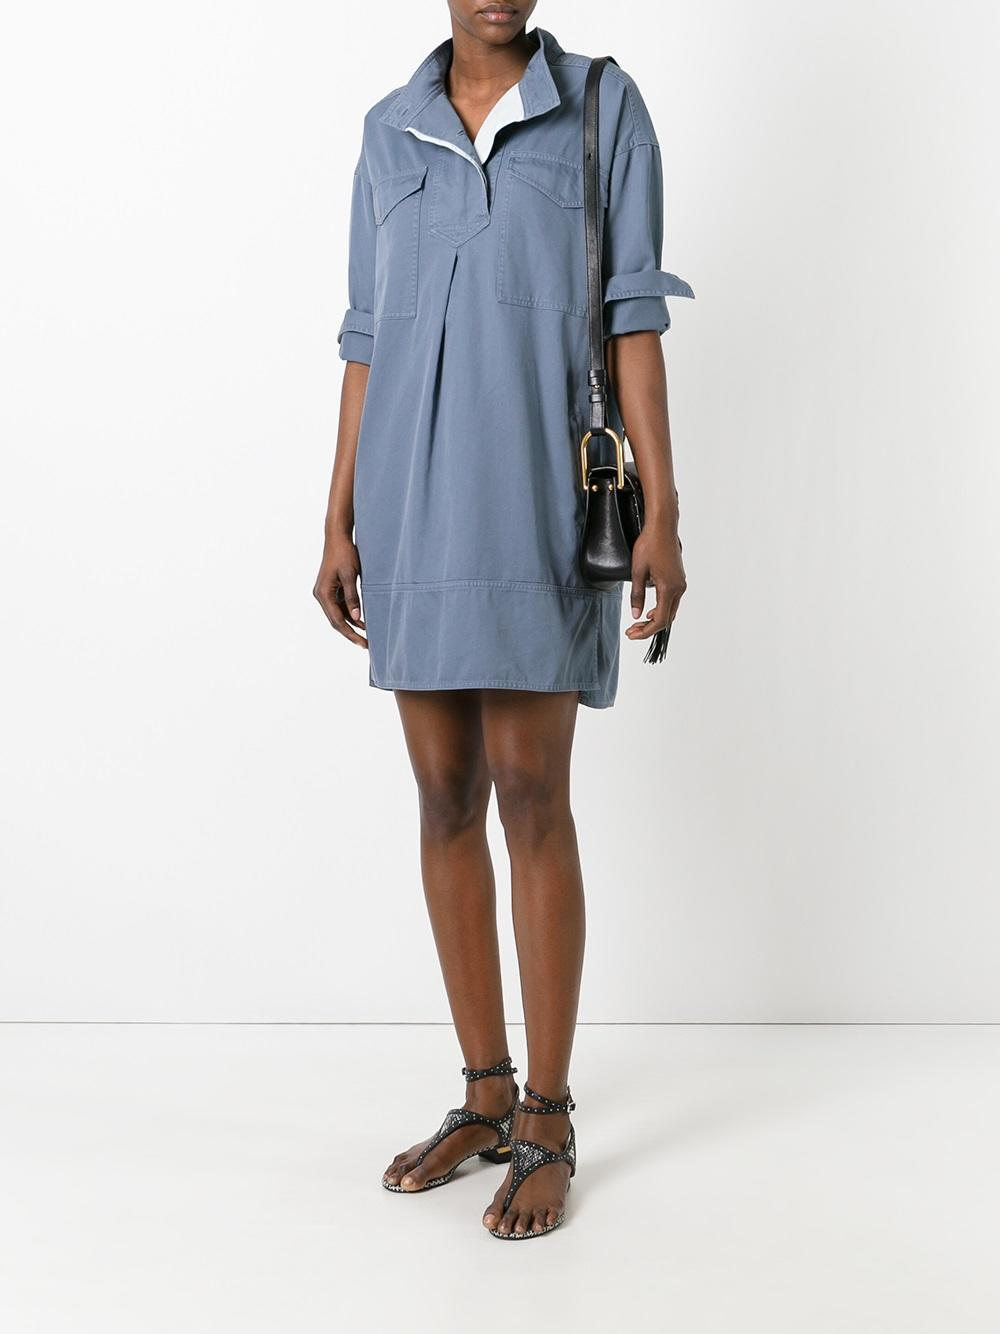 Toile isabel marant omeo shirt dress in blue lyst for Isabel marant shirt dress